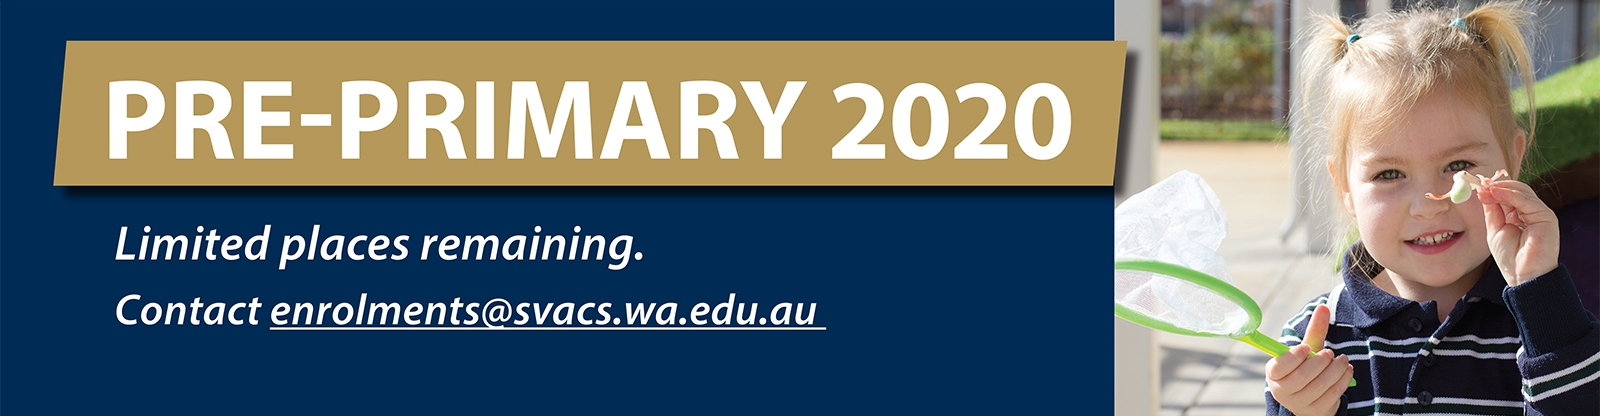 Pre-Primary 2020 places available at SVACS